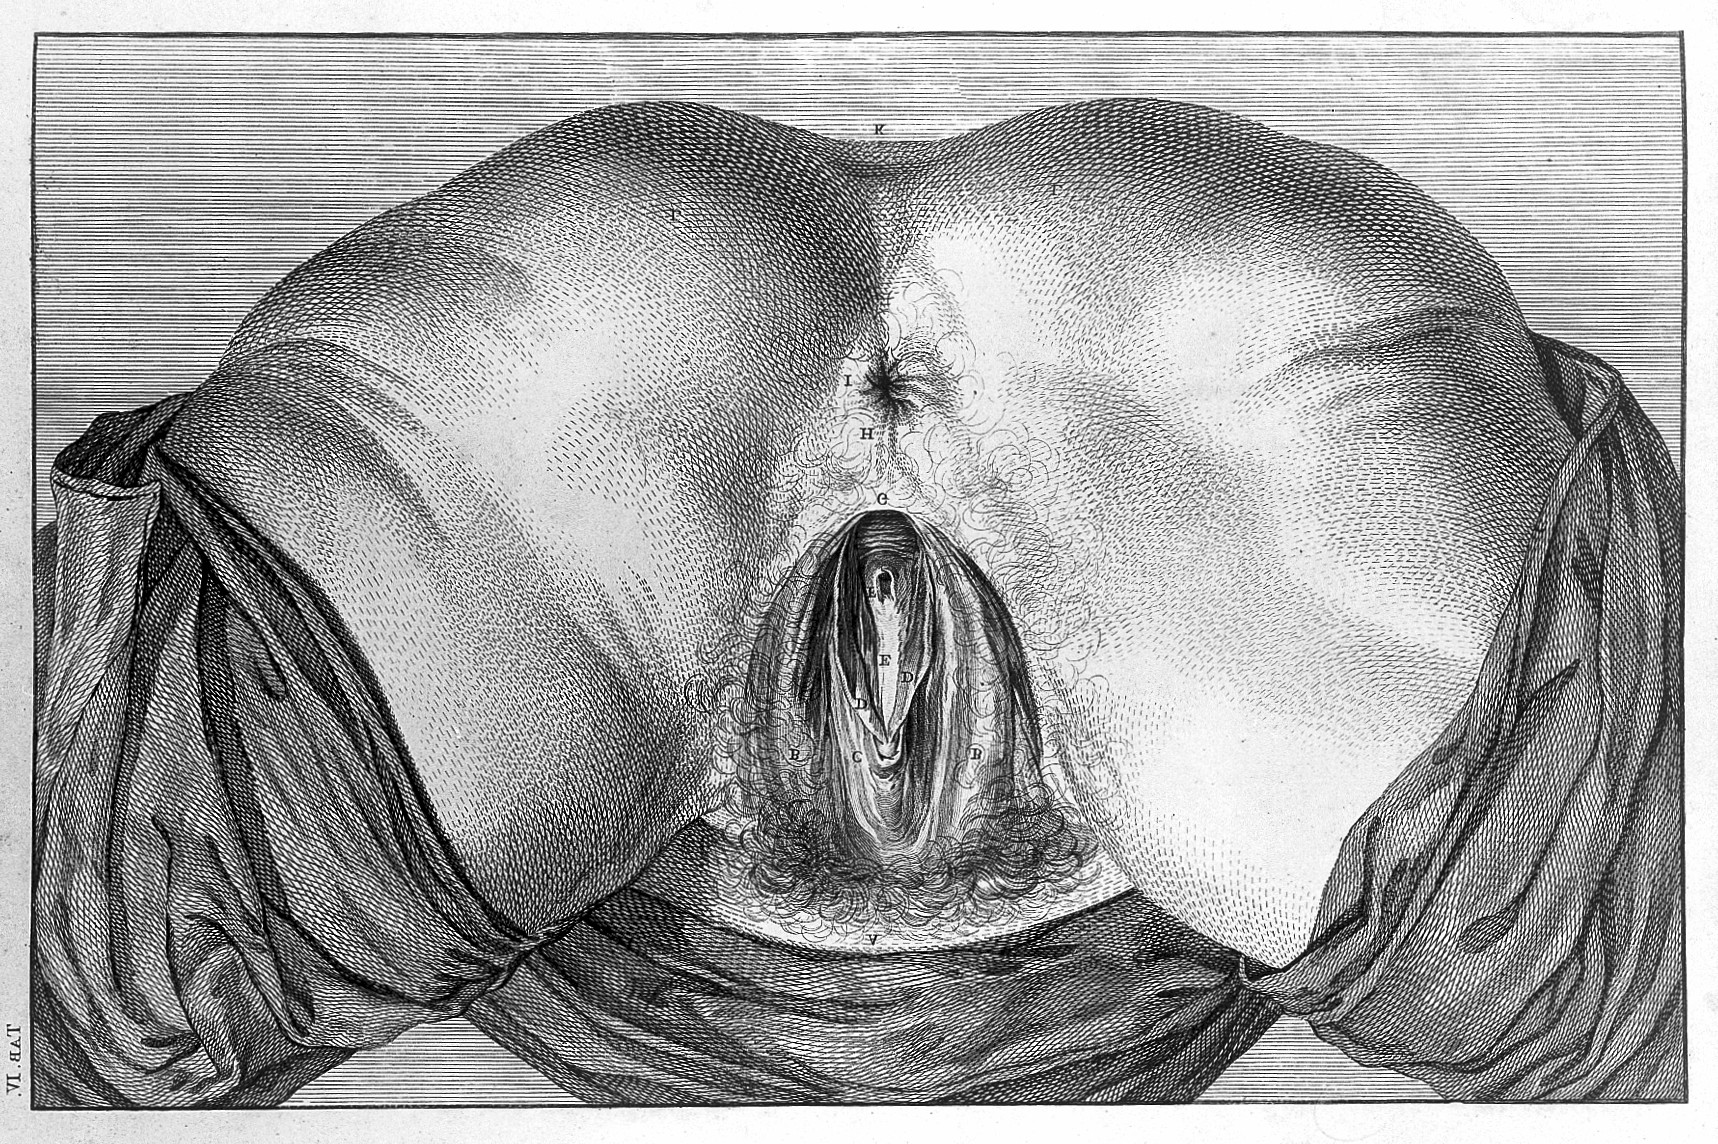 ... 1,718 × 1,144 pixels, file size: 1.04 MB, MIME type: image/jpeg: https://commons.wikimedia.org/wiki/File:External_-_vagina,_urethra_and_anus._Wellcome_L0015798.jpg